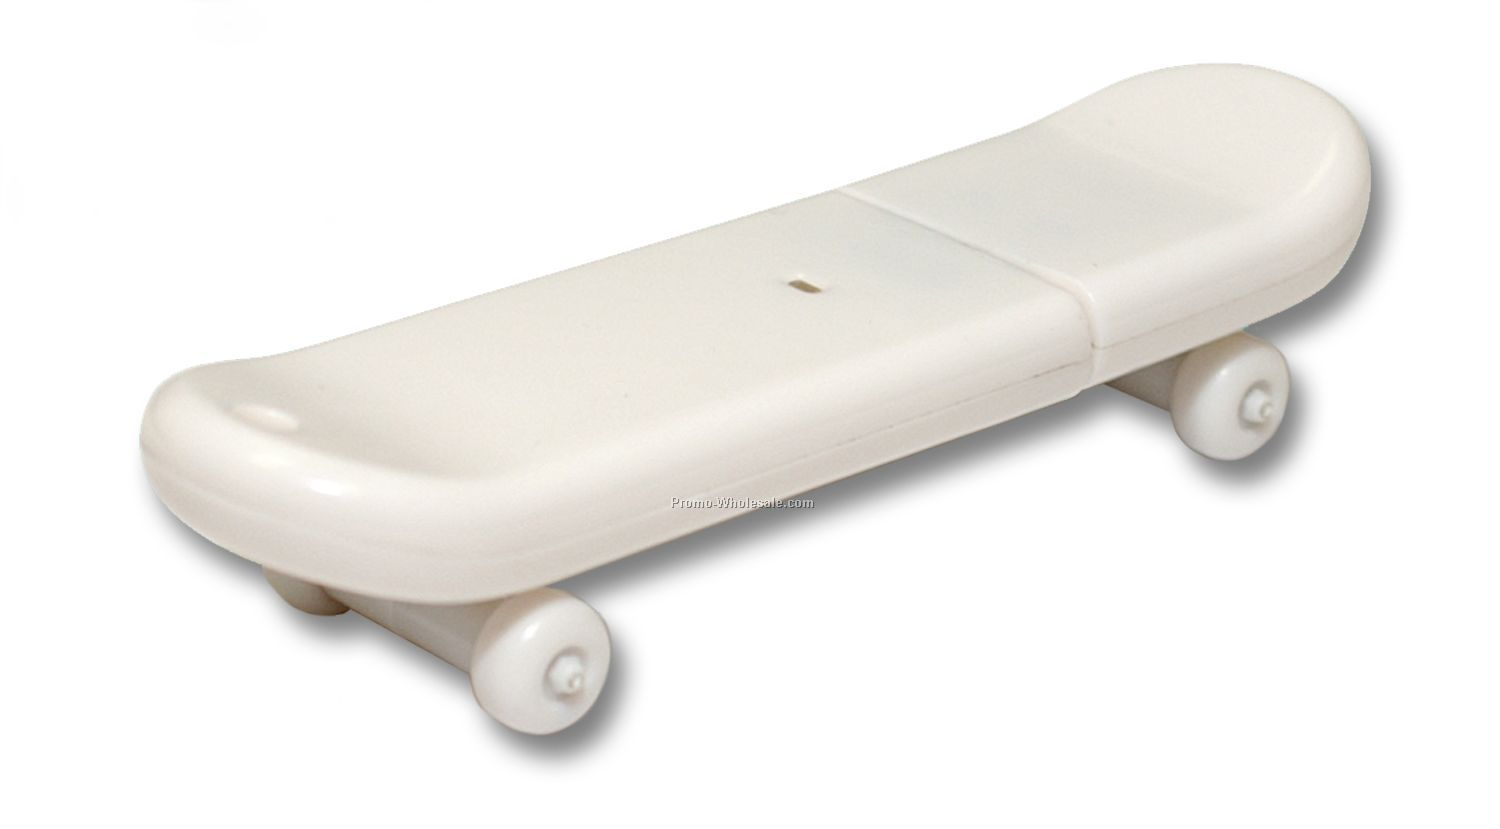 2gb Usb2.0 Skateboard Flash Drive - Rubber Coated White